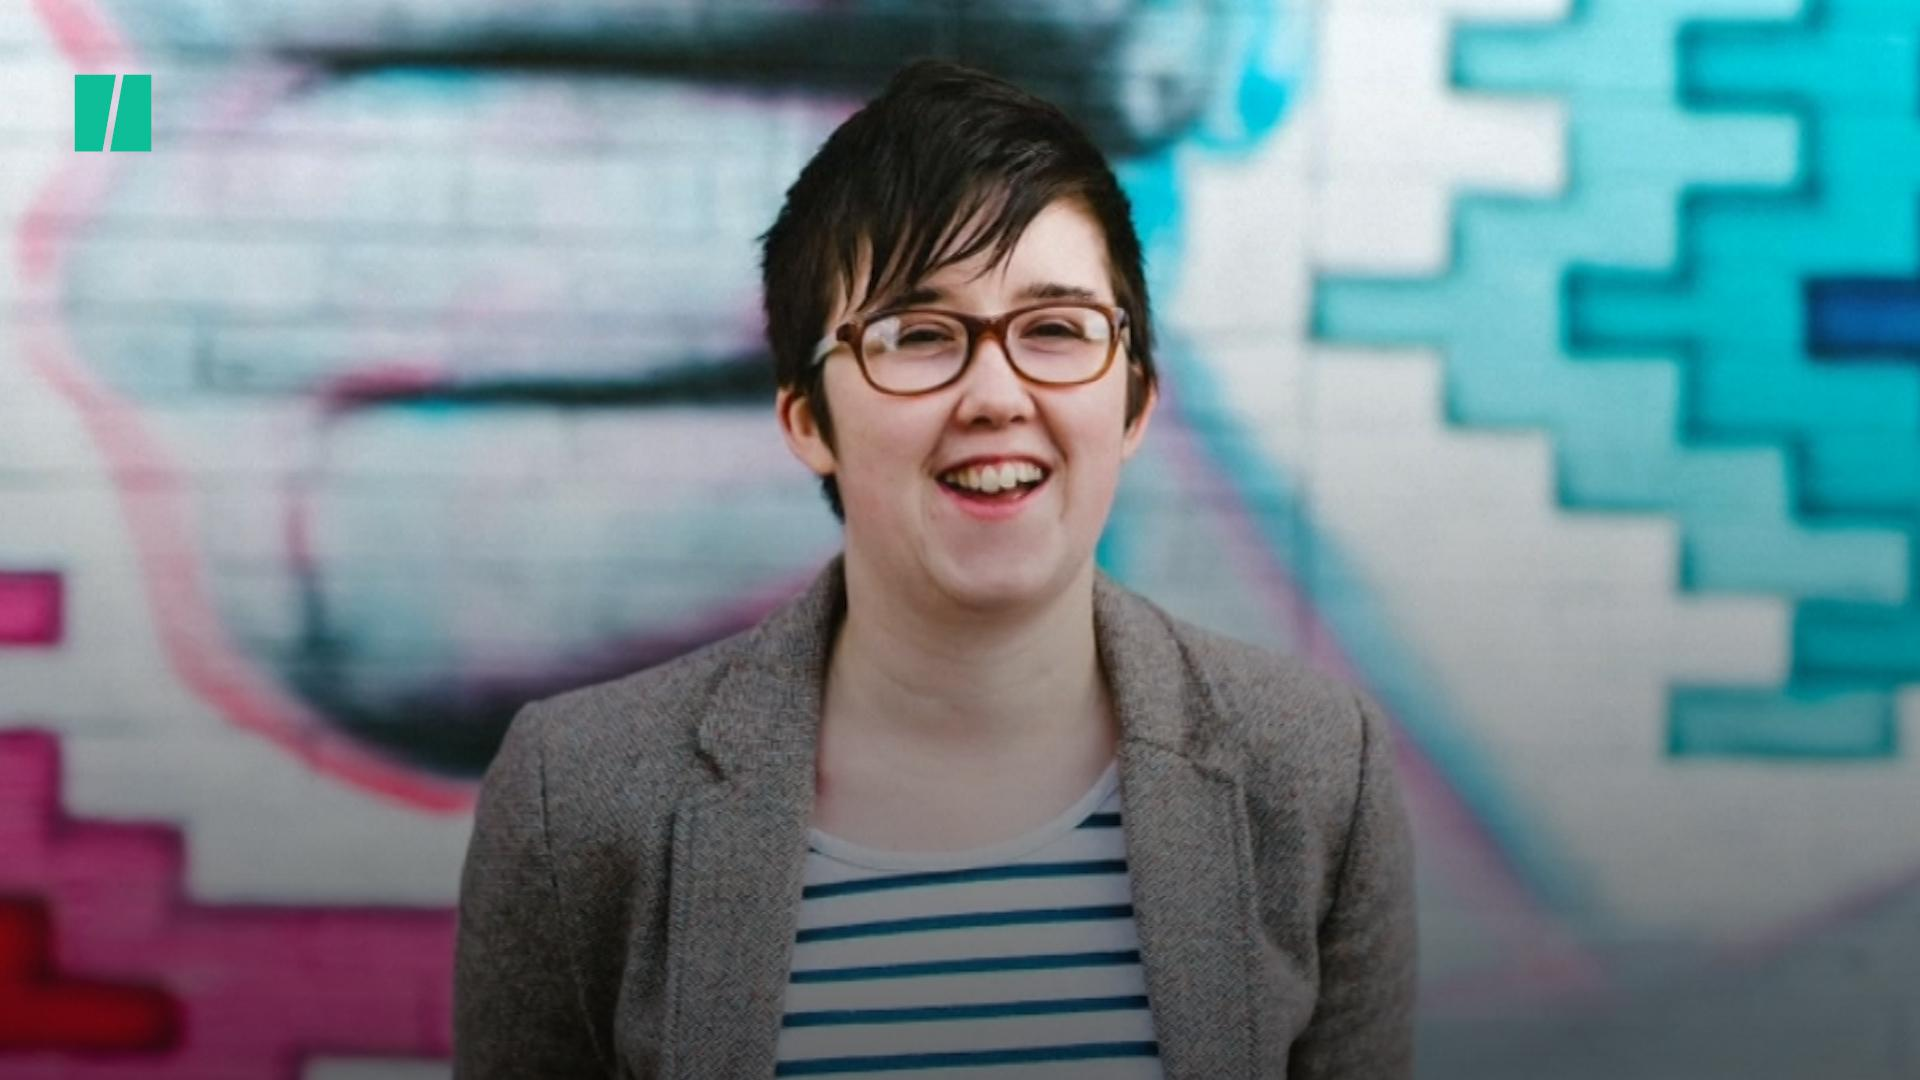 Lyra McKee: Family Of Journalist Murdered In Northern Ireland Pay Tribute To 'A Gentle Innocent Soul'